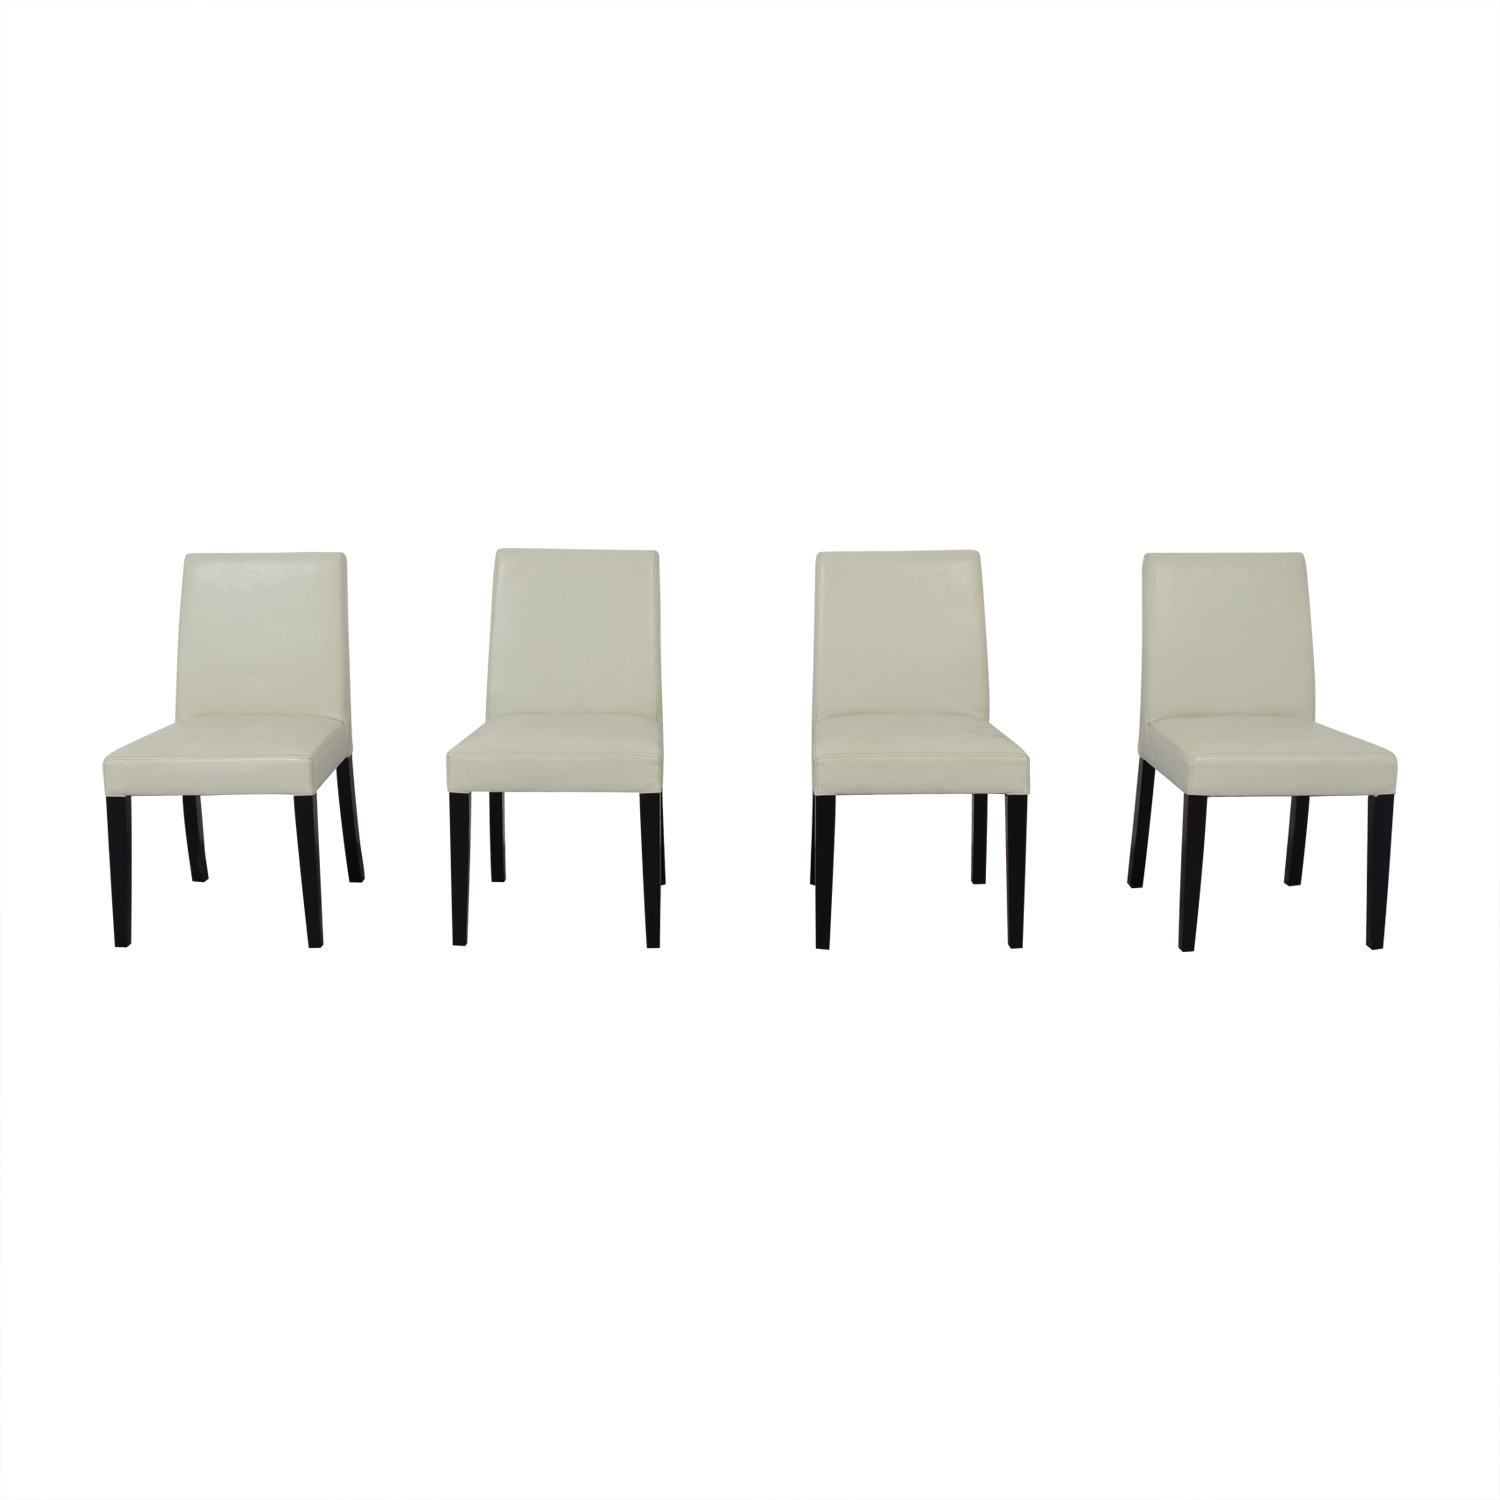 Beige Leather Dining Chairs 66 Off Crate Barrel Crate Barrel White Leather Dining Chairs Chairs